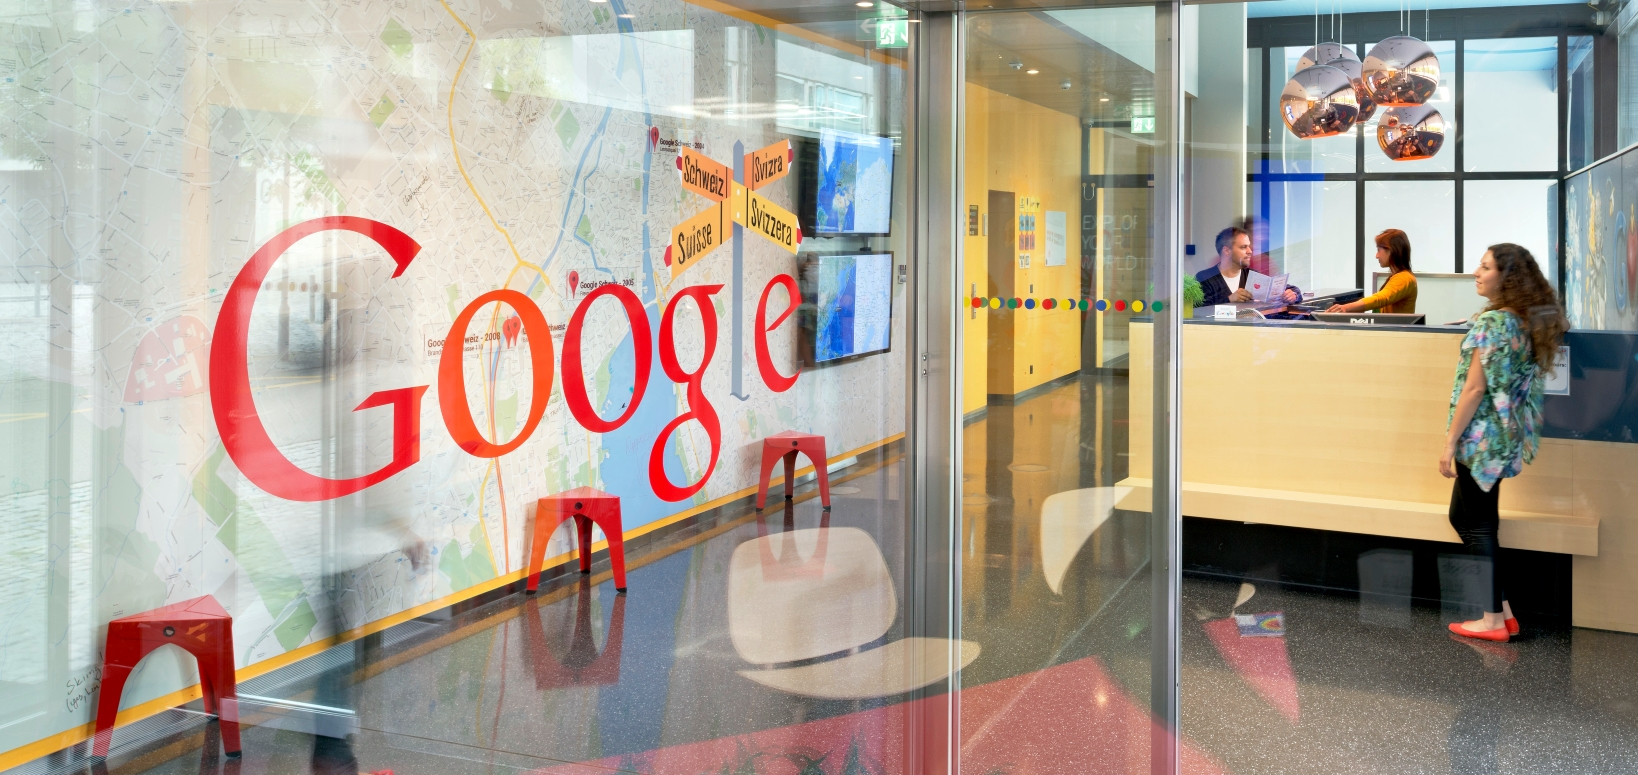 Alphabet Posts Strong Revenues, But Taxes Hit Earnings